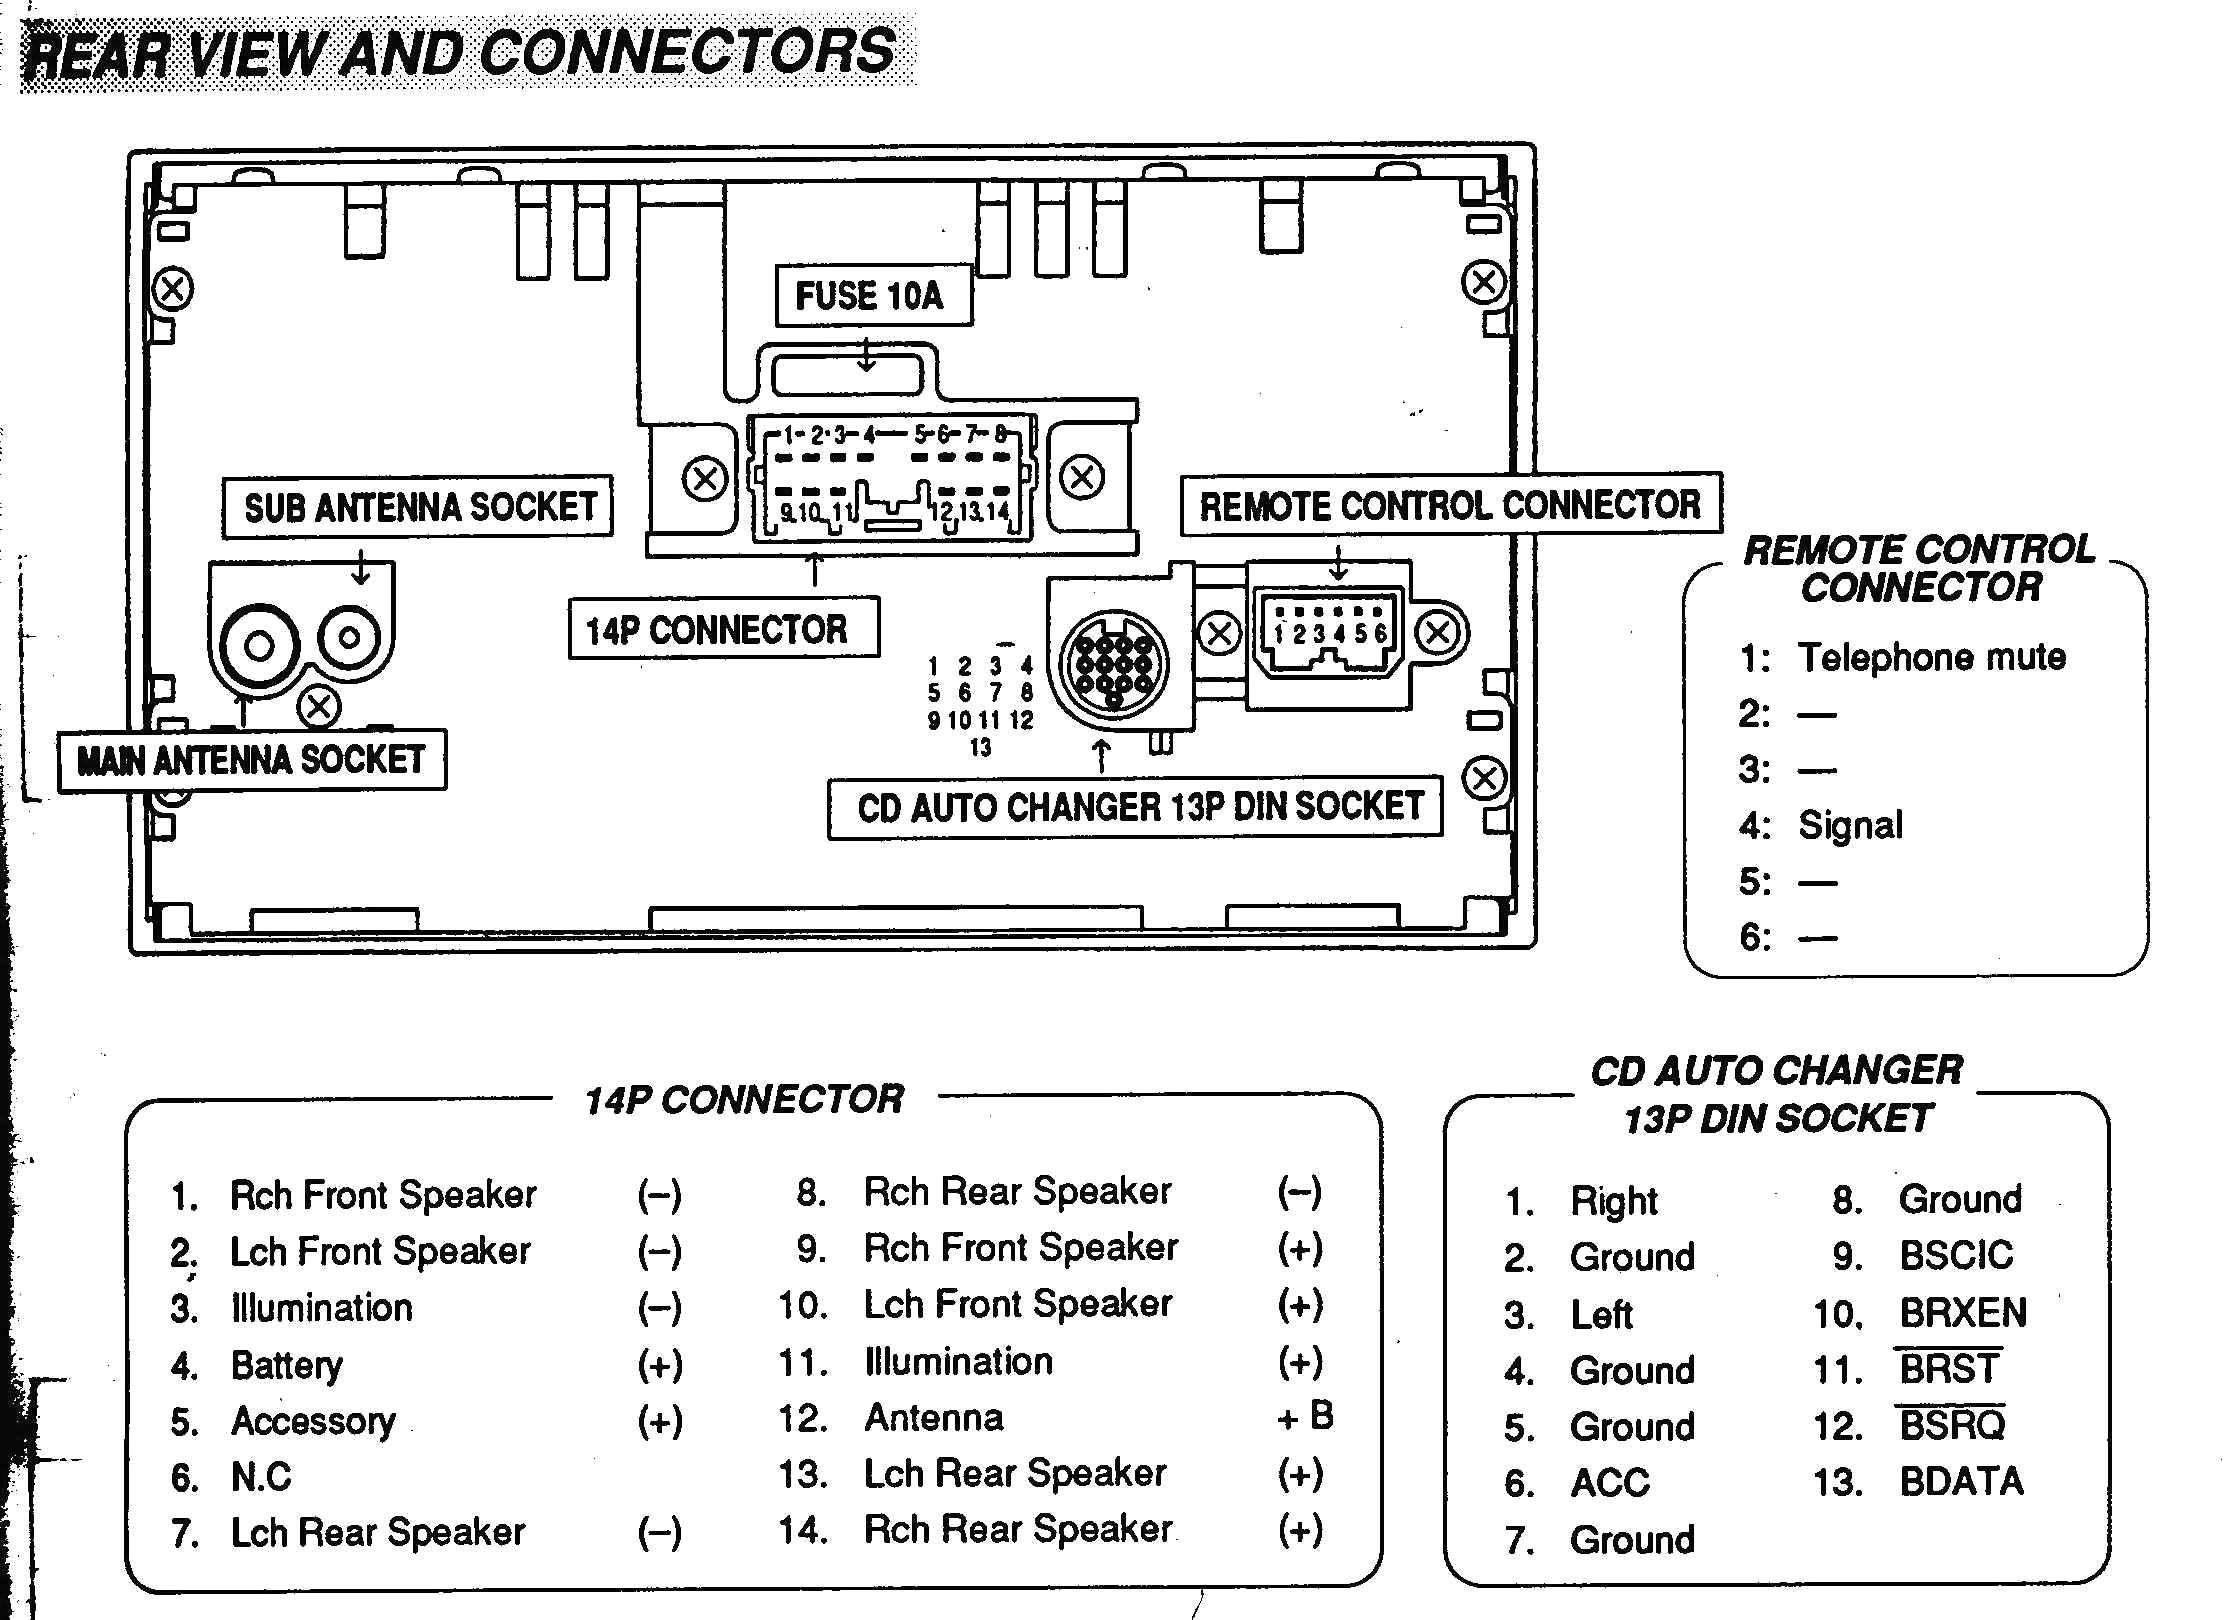 Wiring diagrams for car audio car with detaleted wiring and factory car with detaleted wiring and factory stereo diagrams wiring diagram asfbconference2016 Image collections